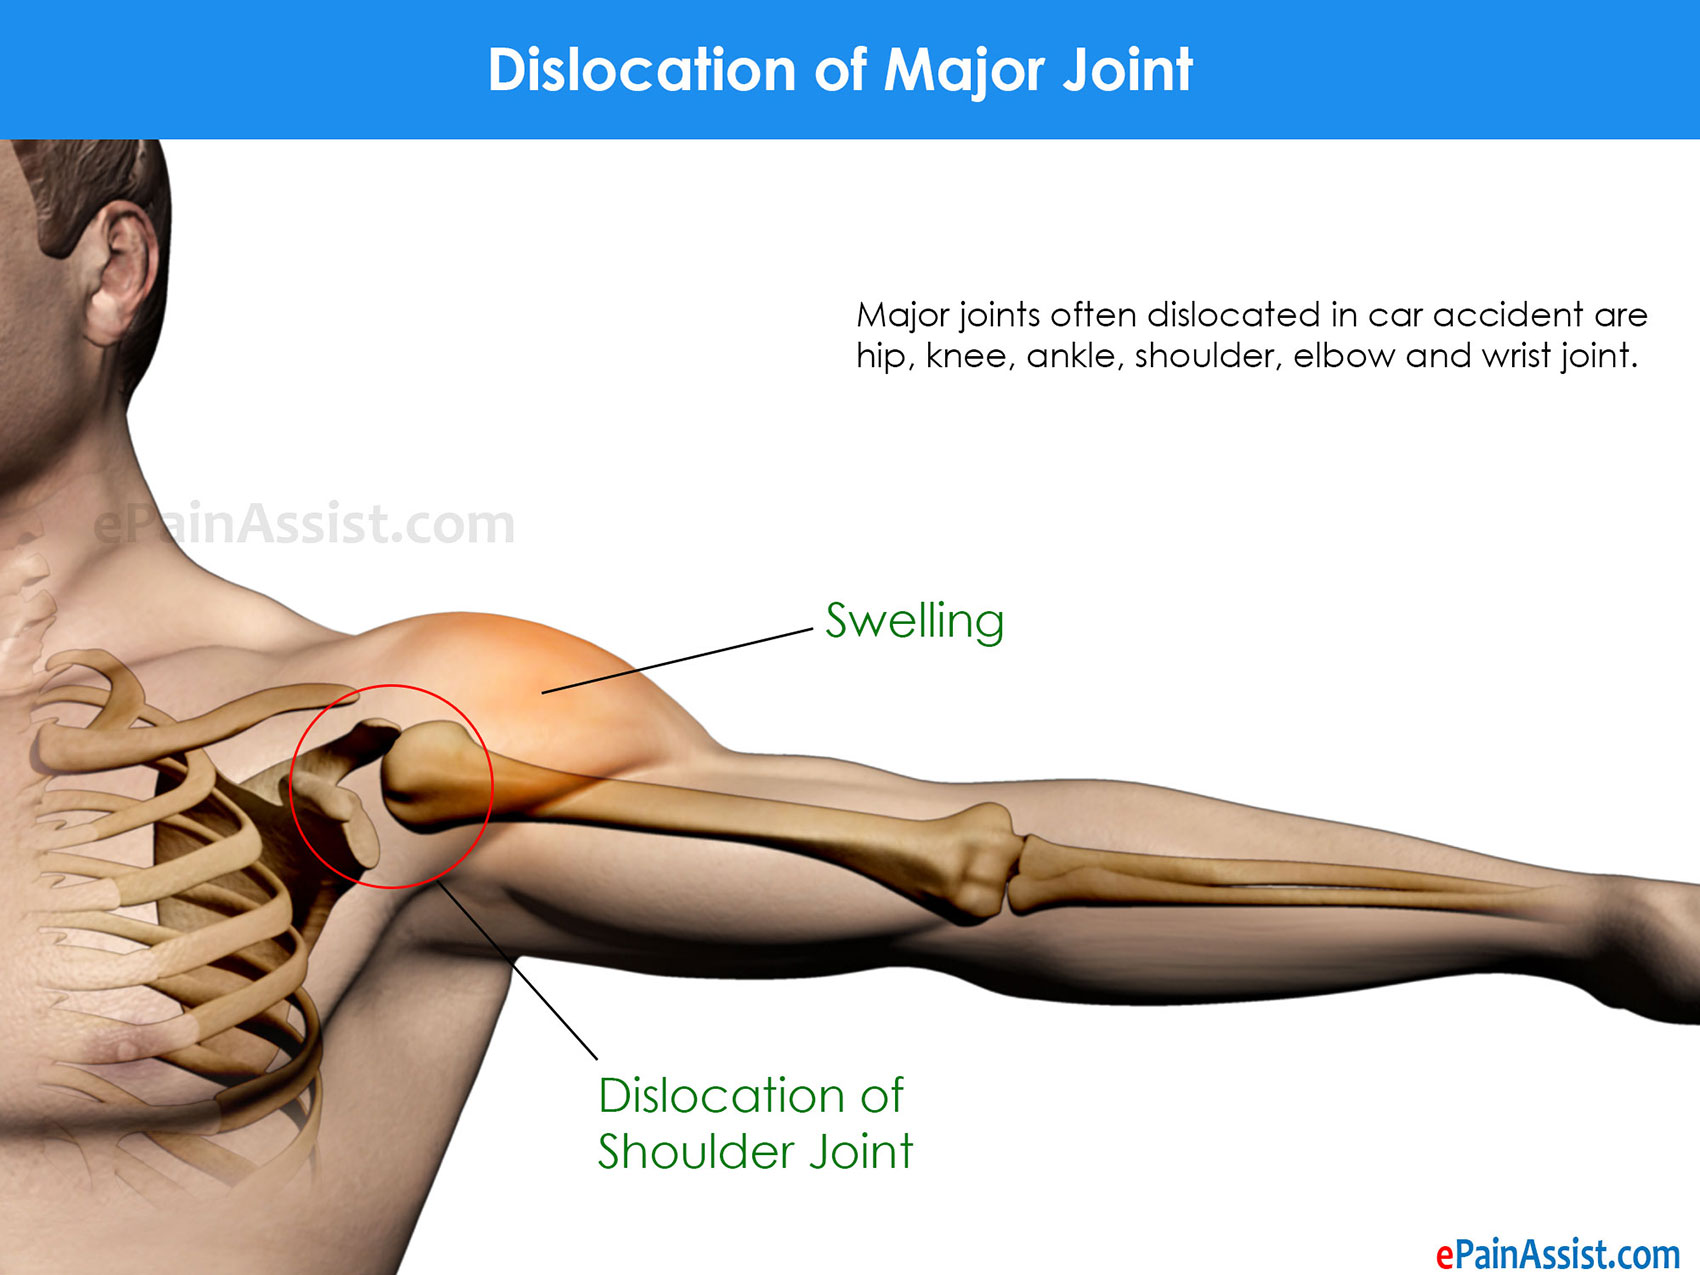 Dislocation of Major Joint